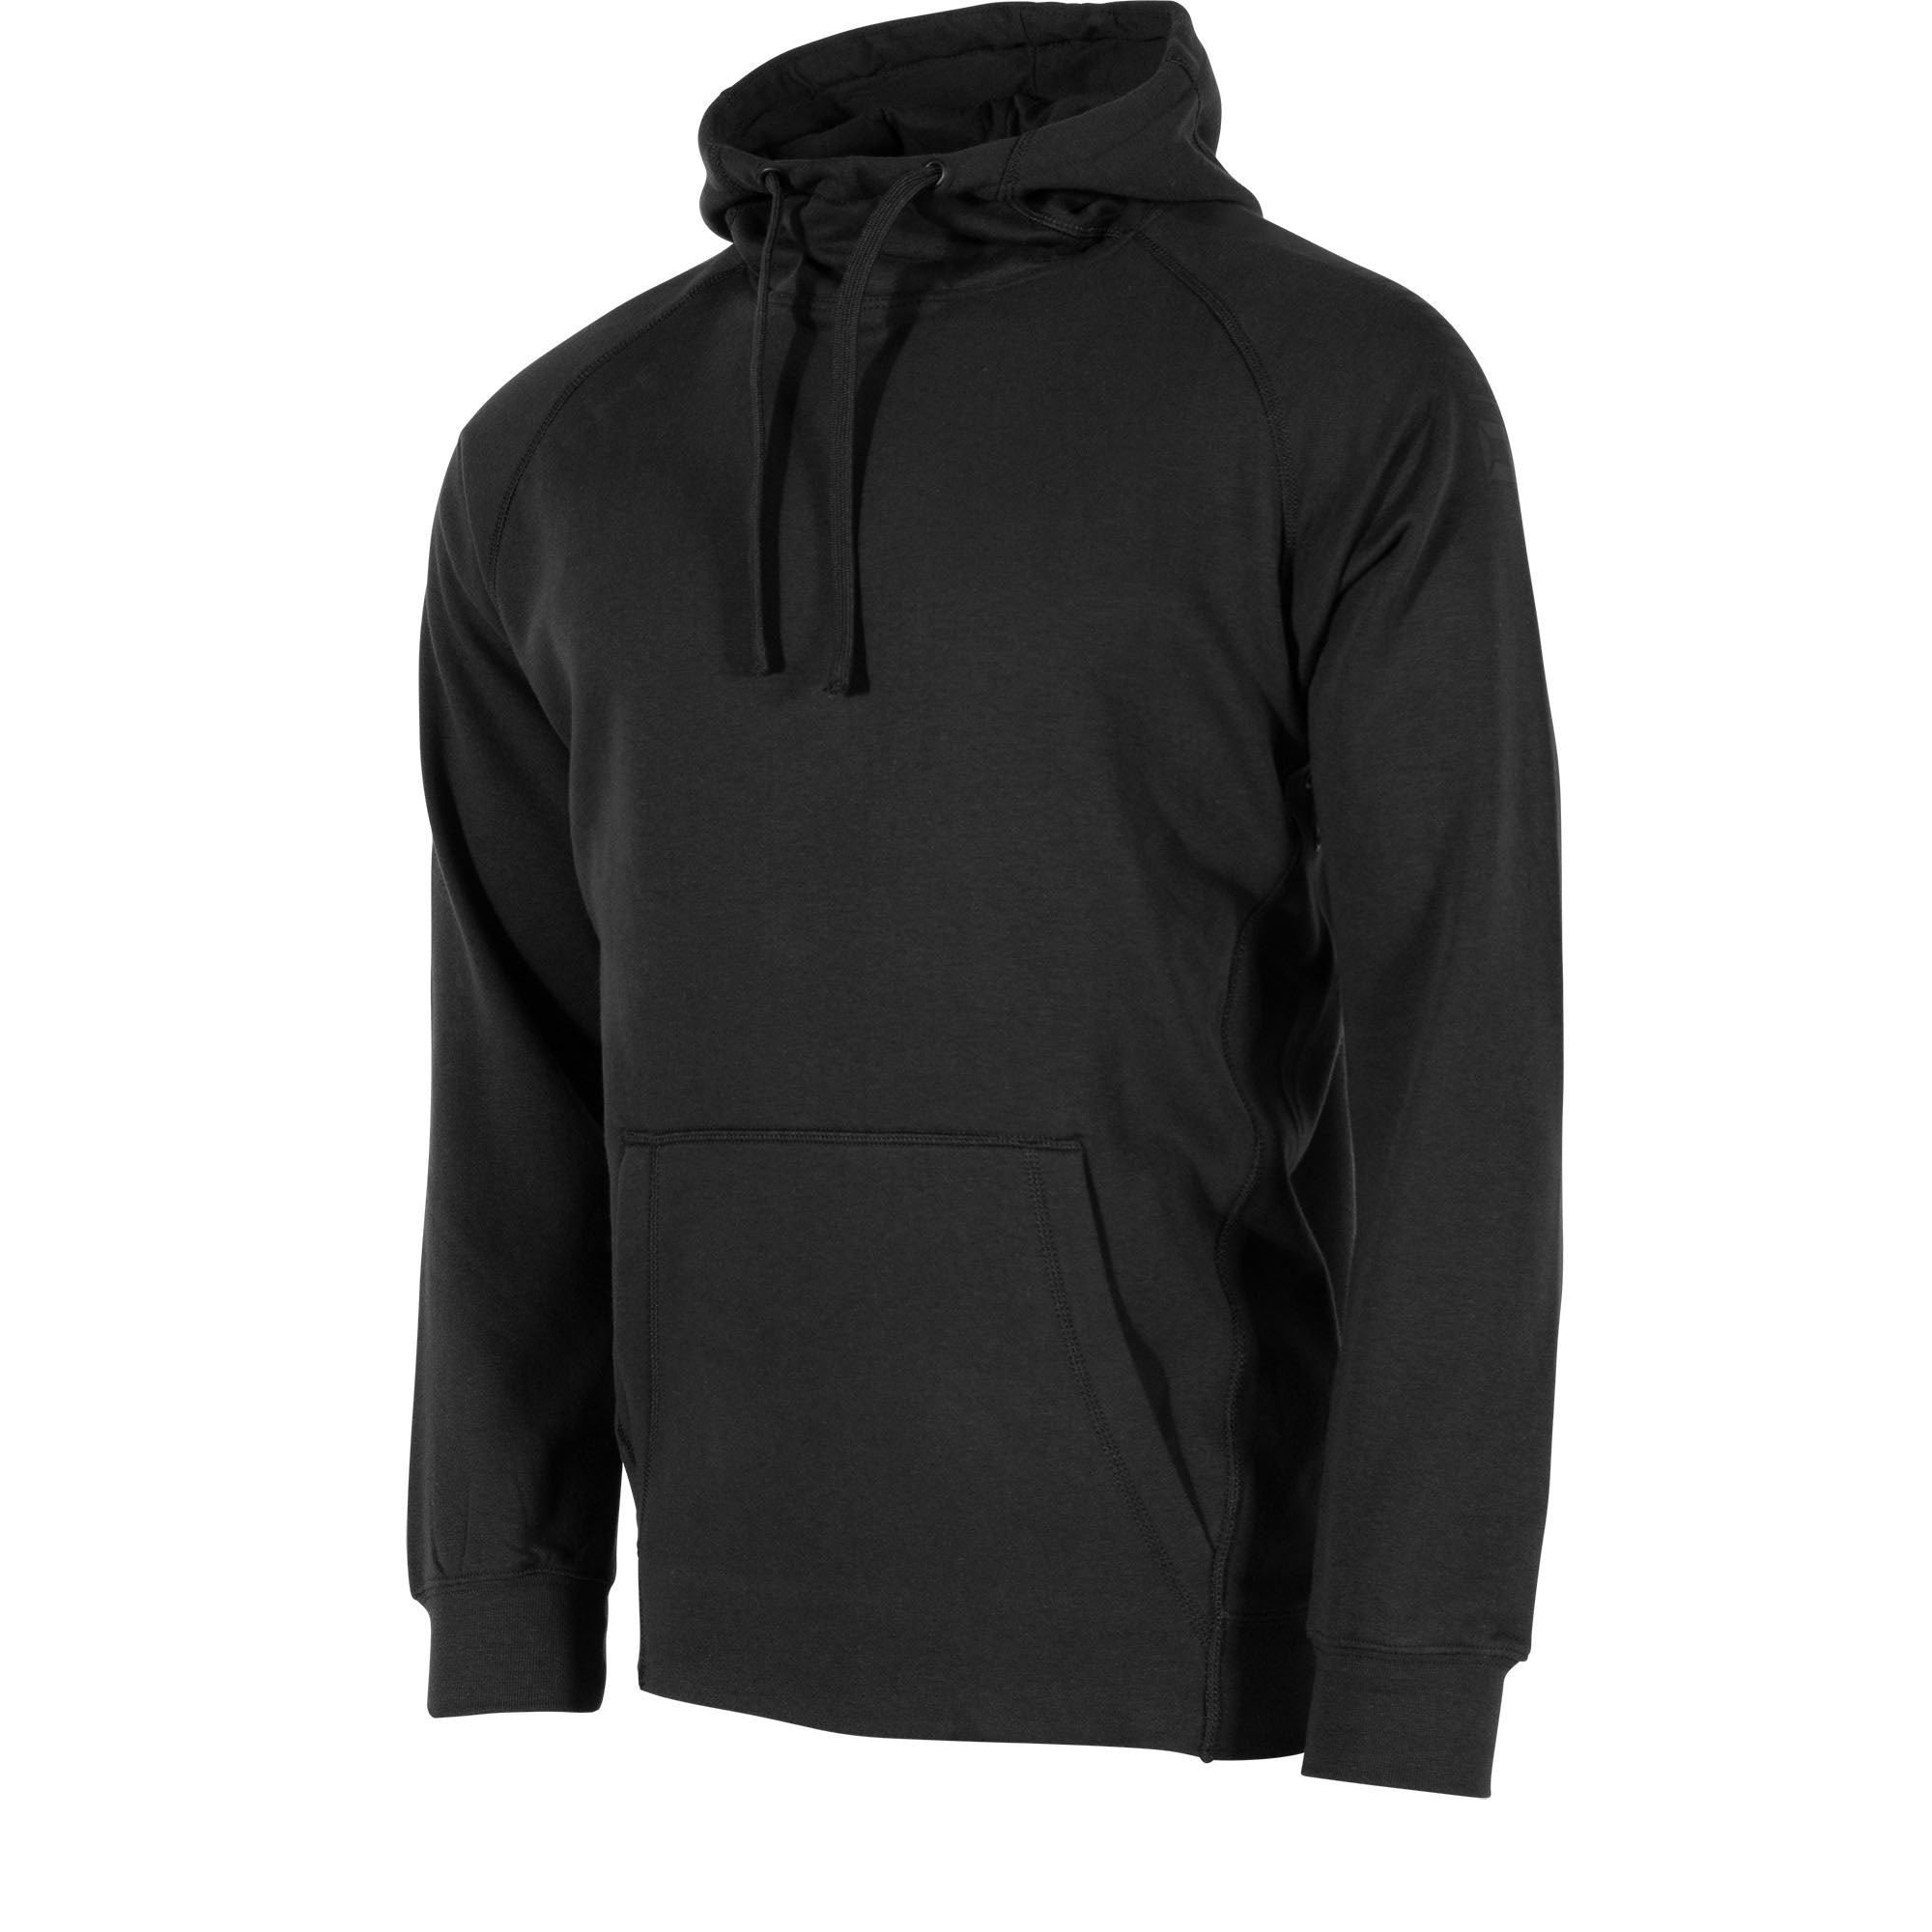 front view of Stanno Ease Hoodie in black with Kangaroo pouch, and printed logo on shoulders.